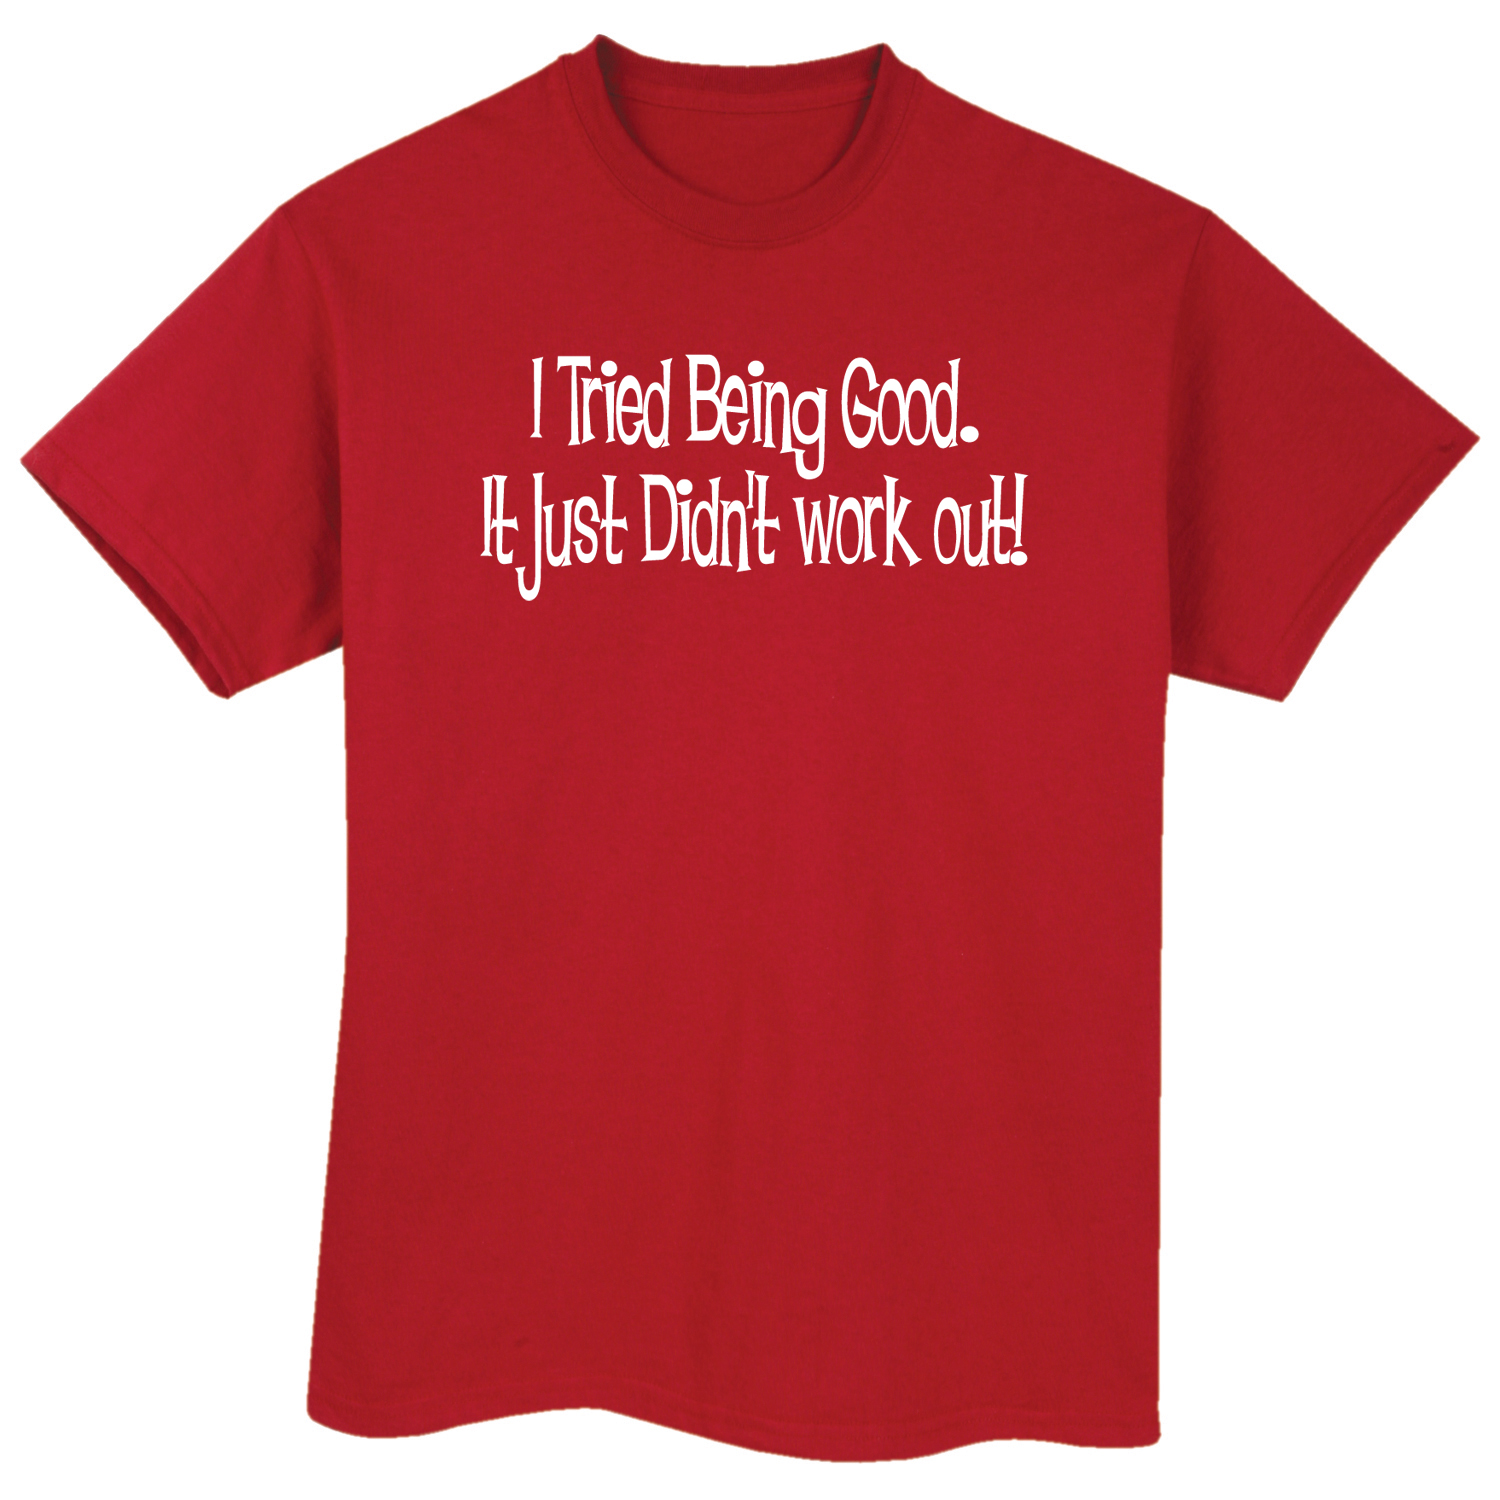 Women's I Tried Being Good But It Didn't Work Out Funny Red T-Shirt